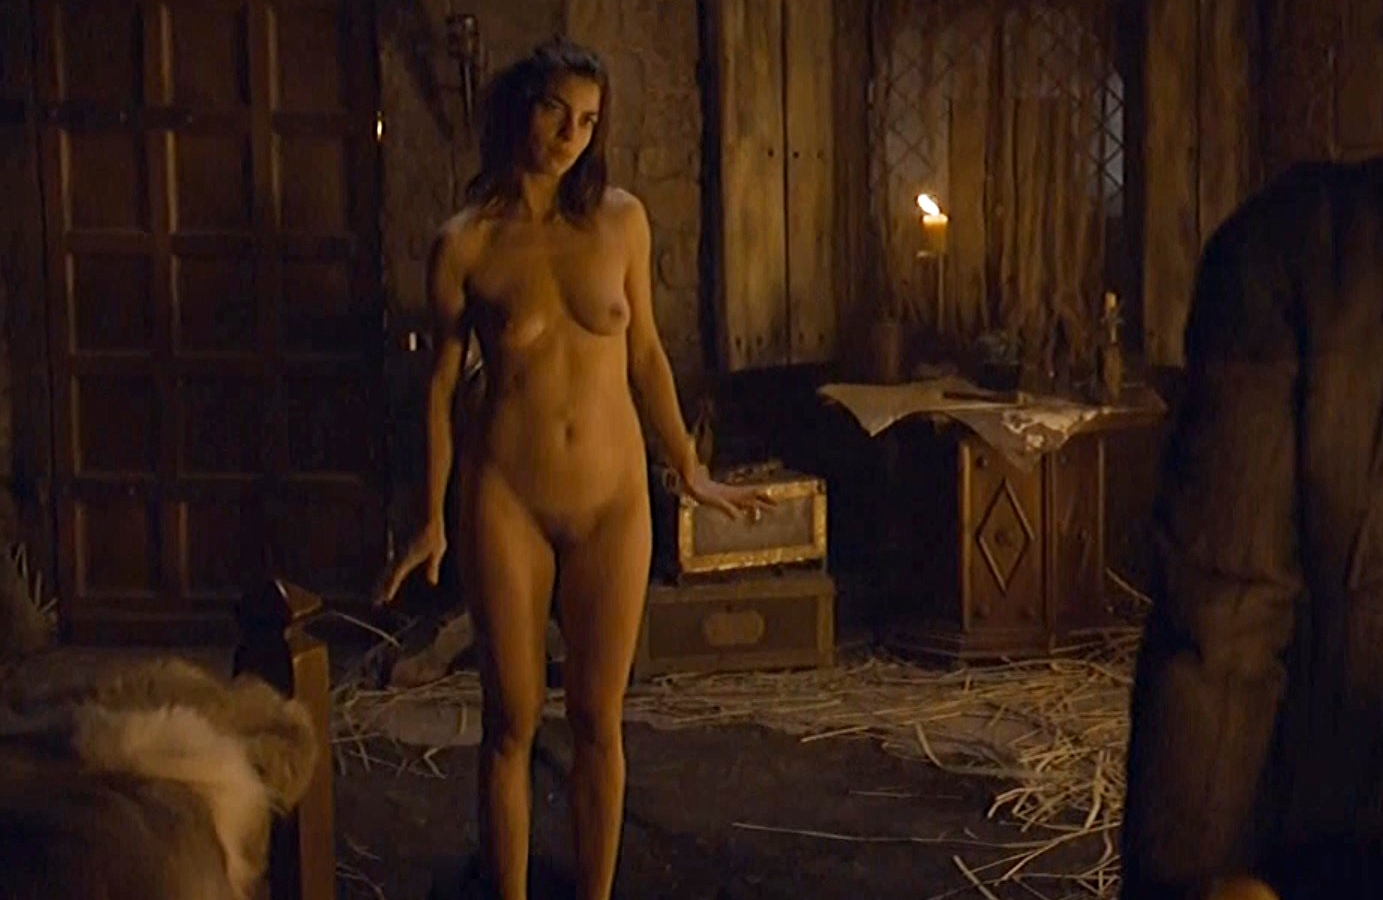 Tena game of naked thrones natalia